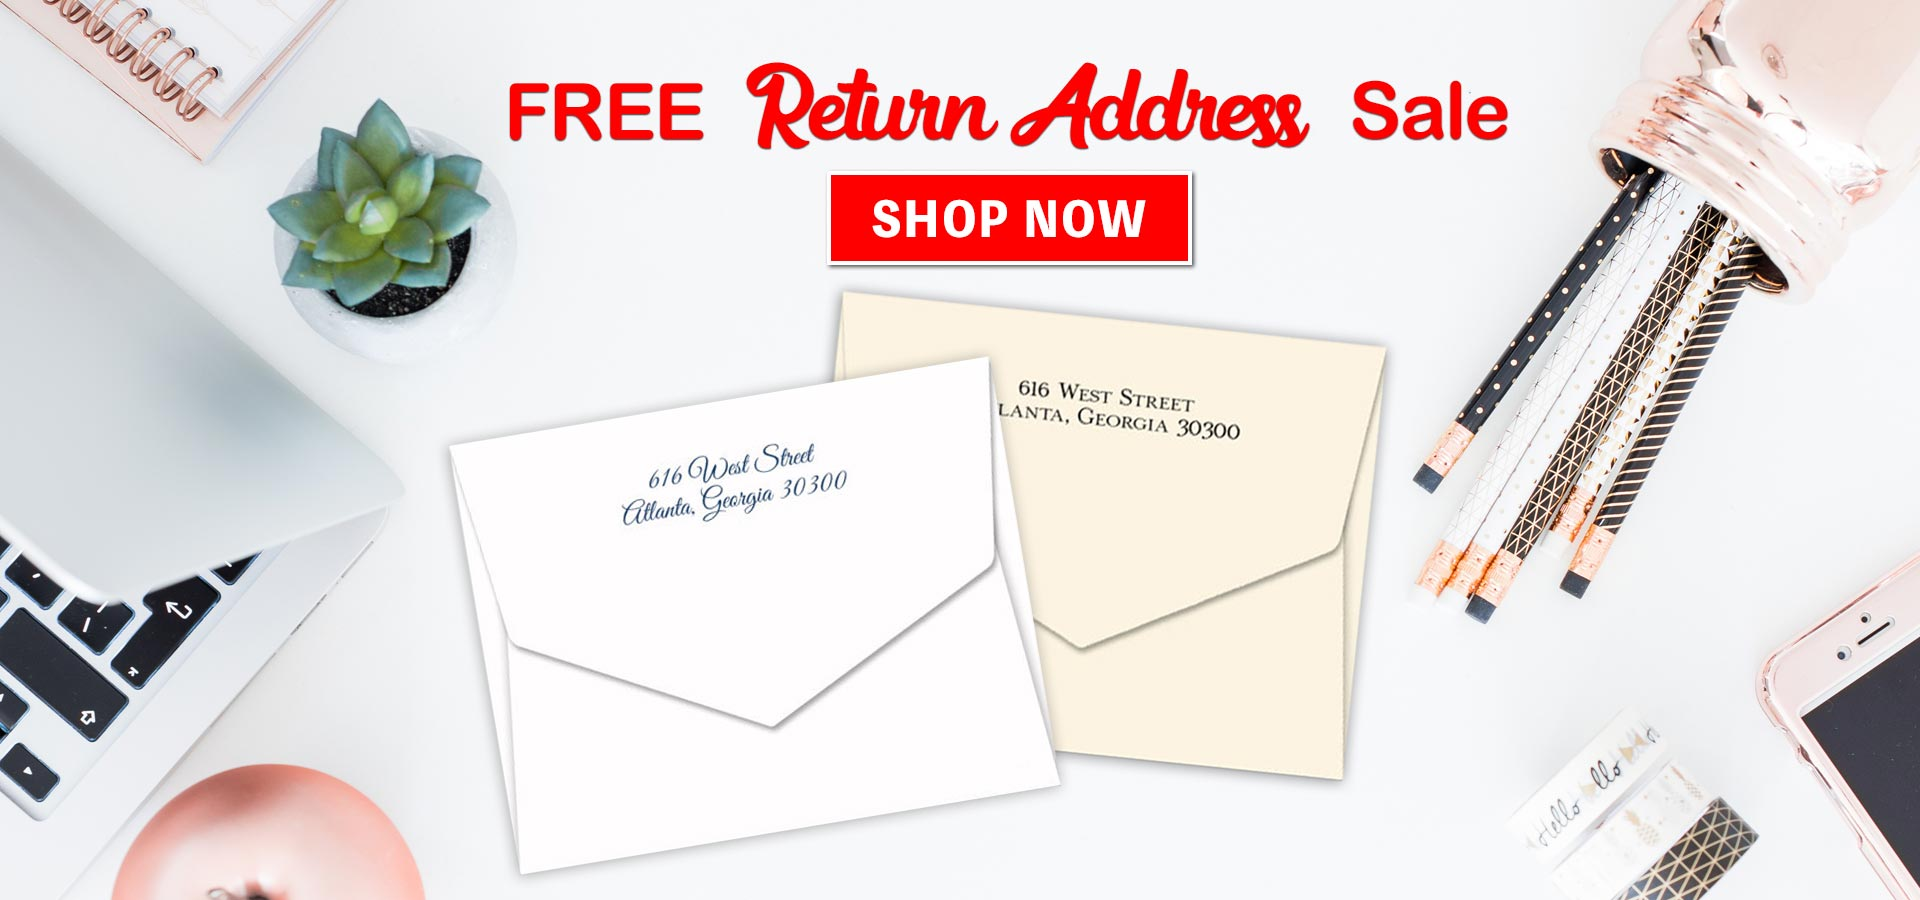 FREE Return Address Sale at StationeryXpress.com!